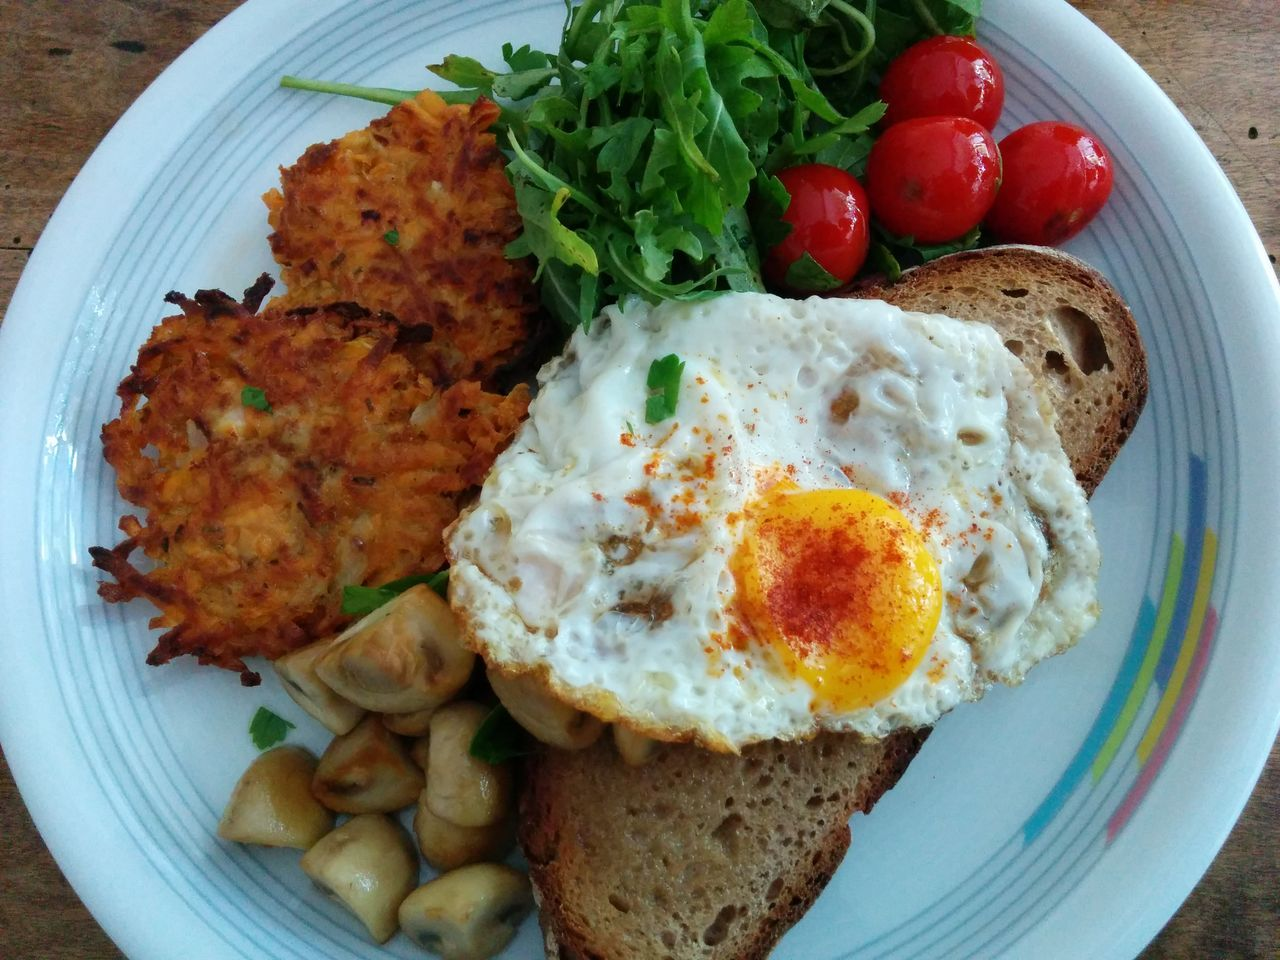 Close-up of breakfast on table